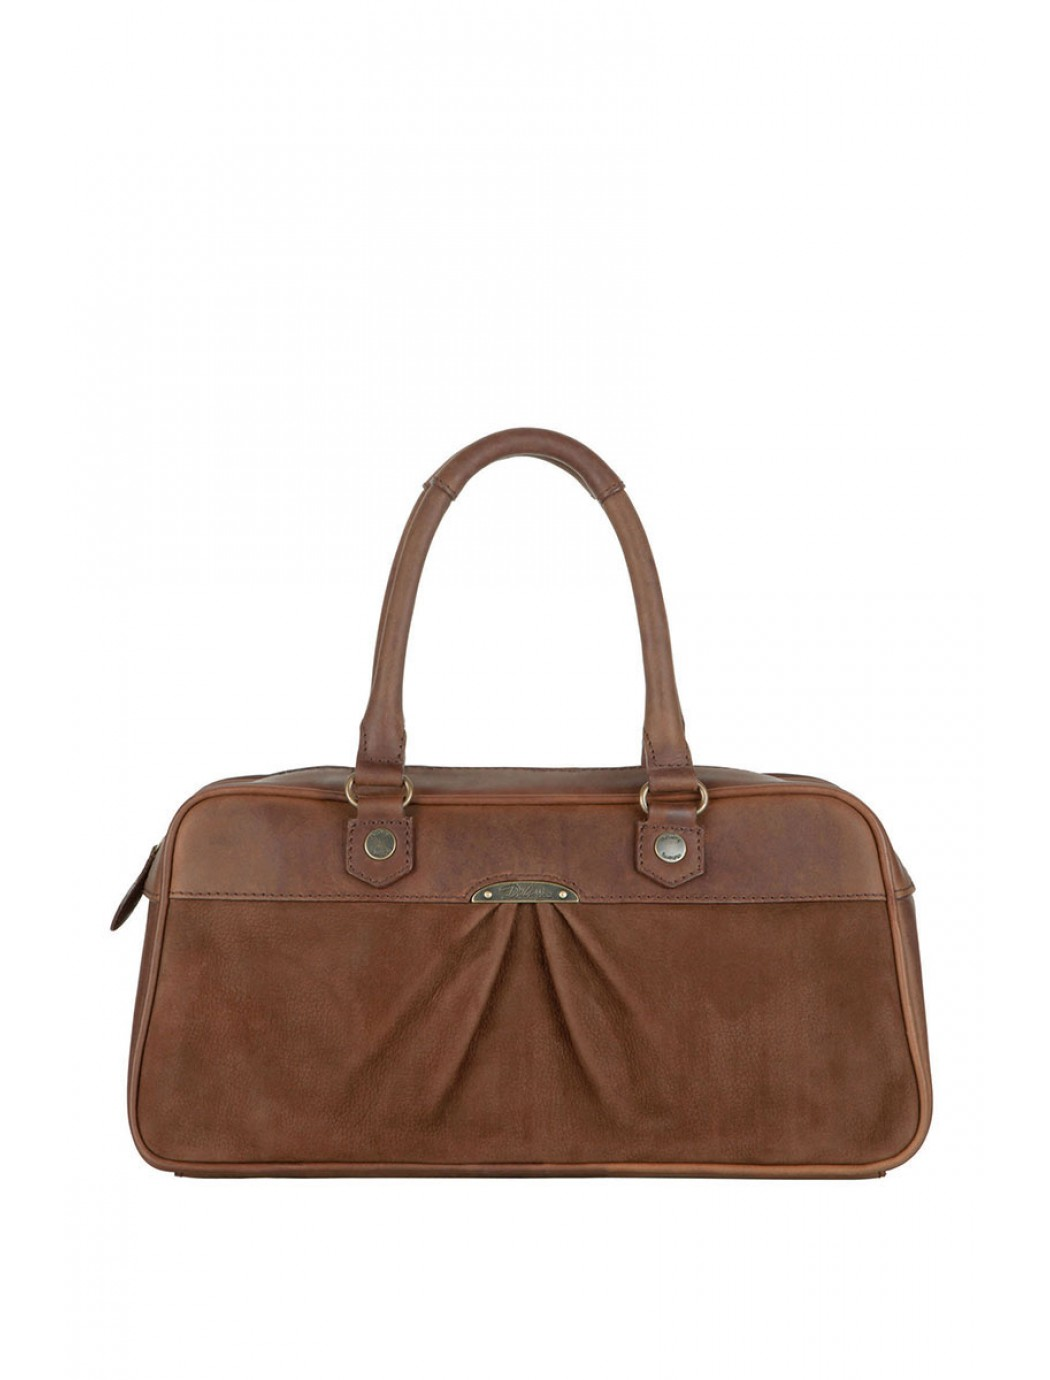 ross-womens-bags-luggage-walnut